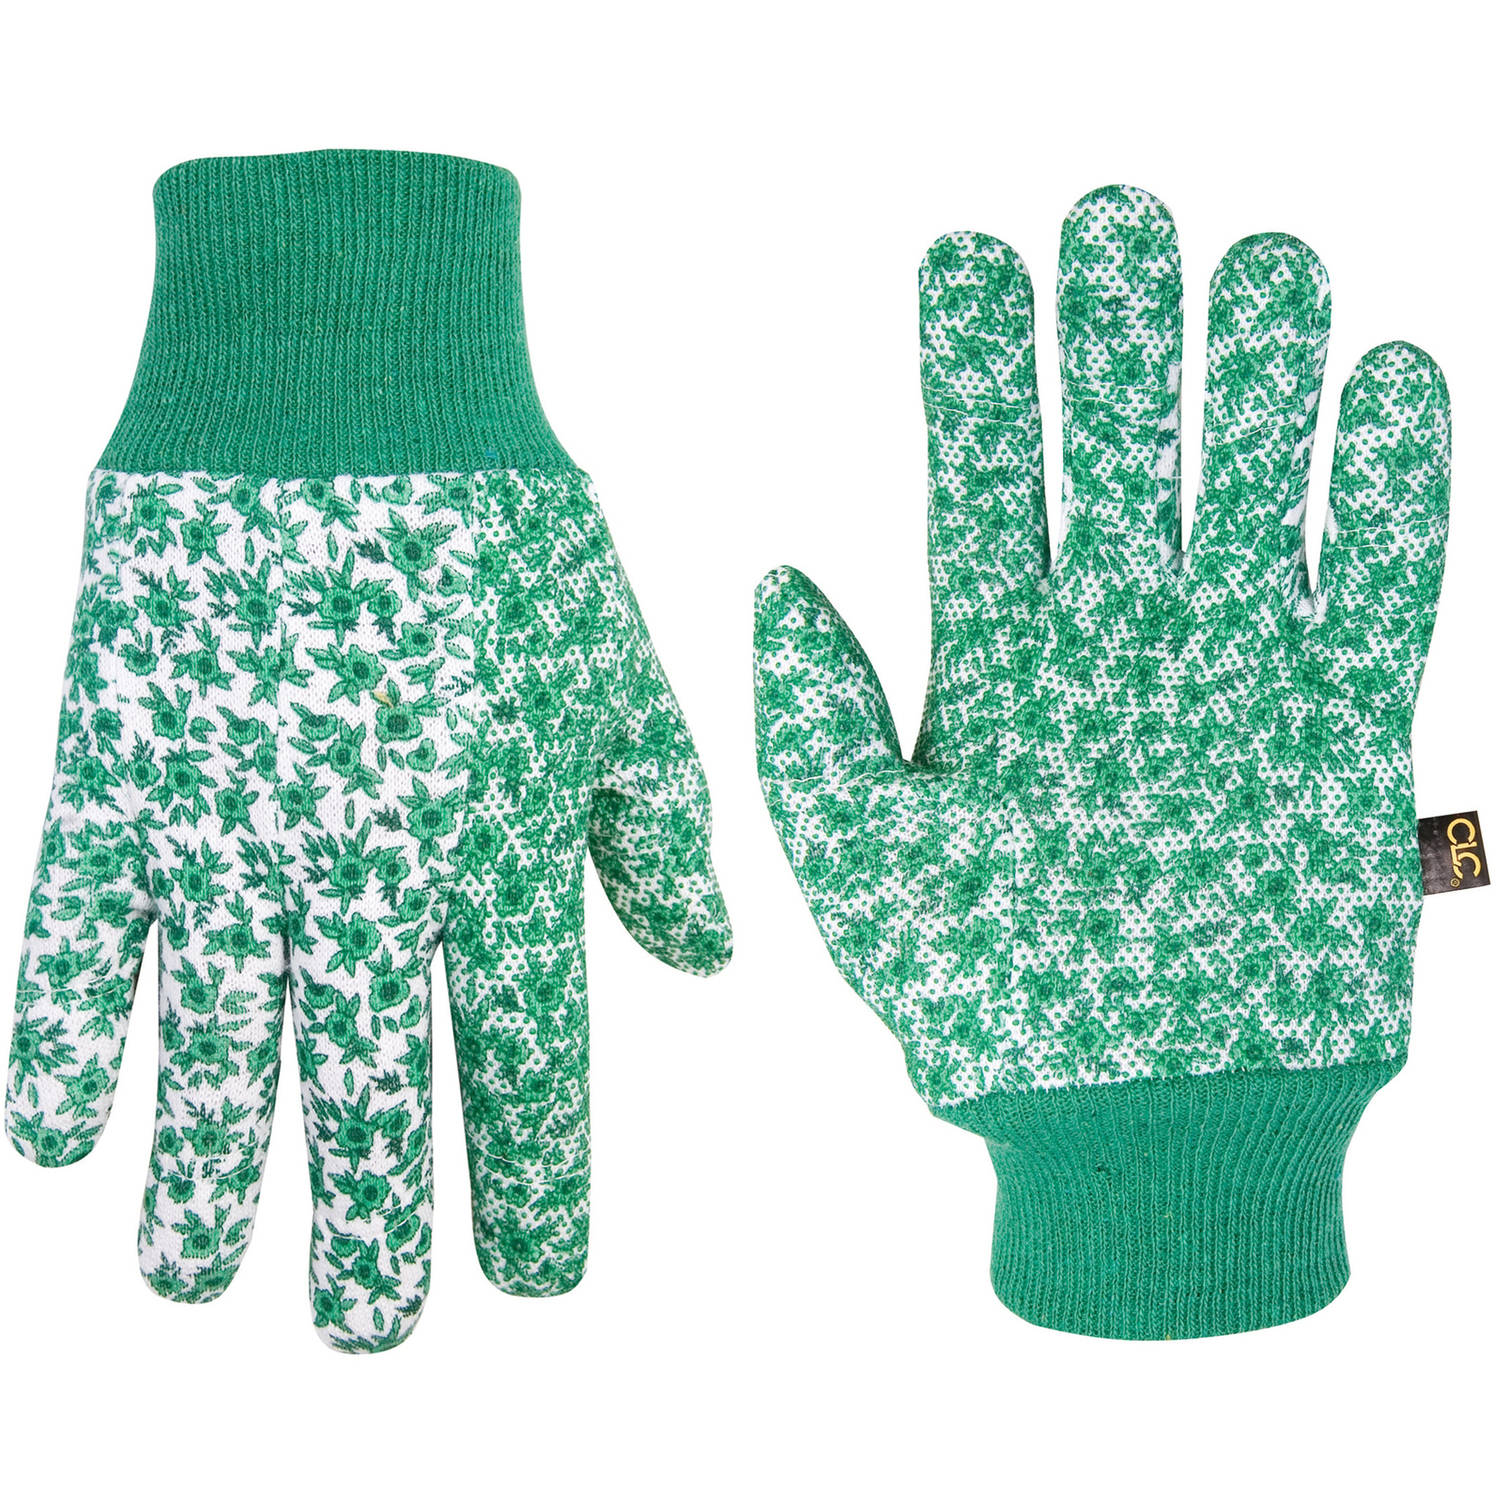 CLC Work Gear 2211 100 percent Cotton Jersey Gardening Gloves with PVC Gripper Dots